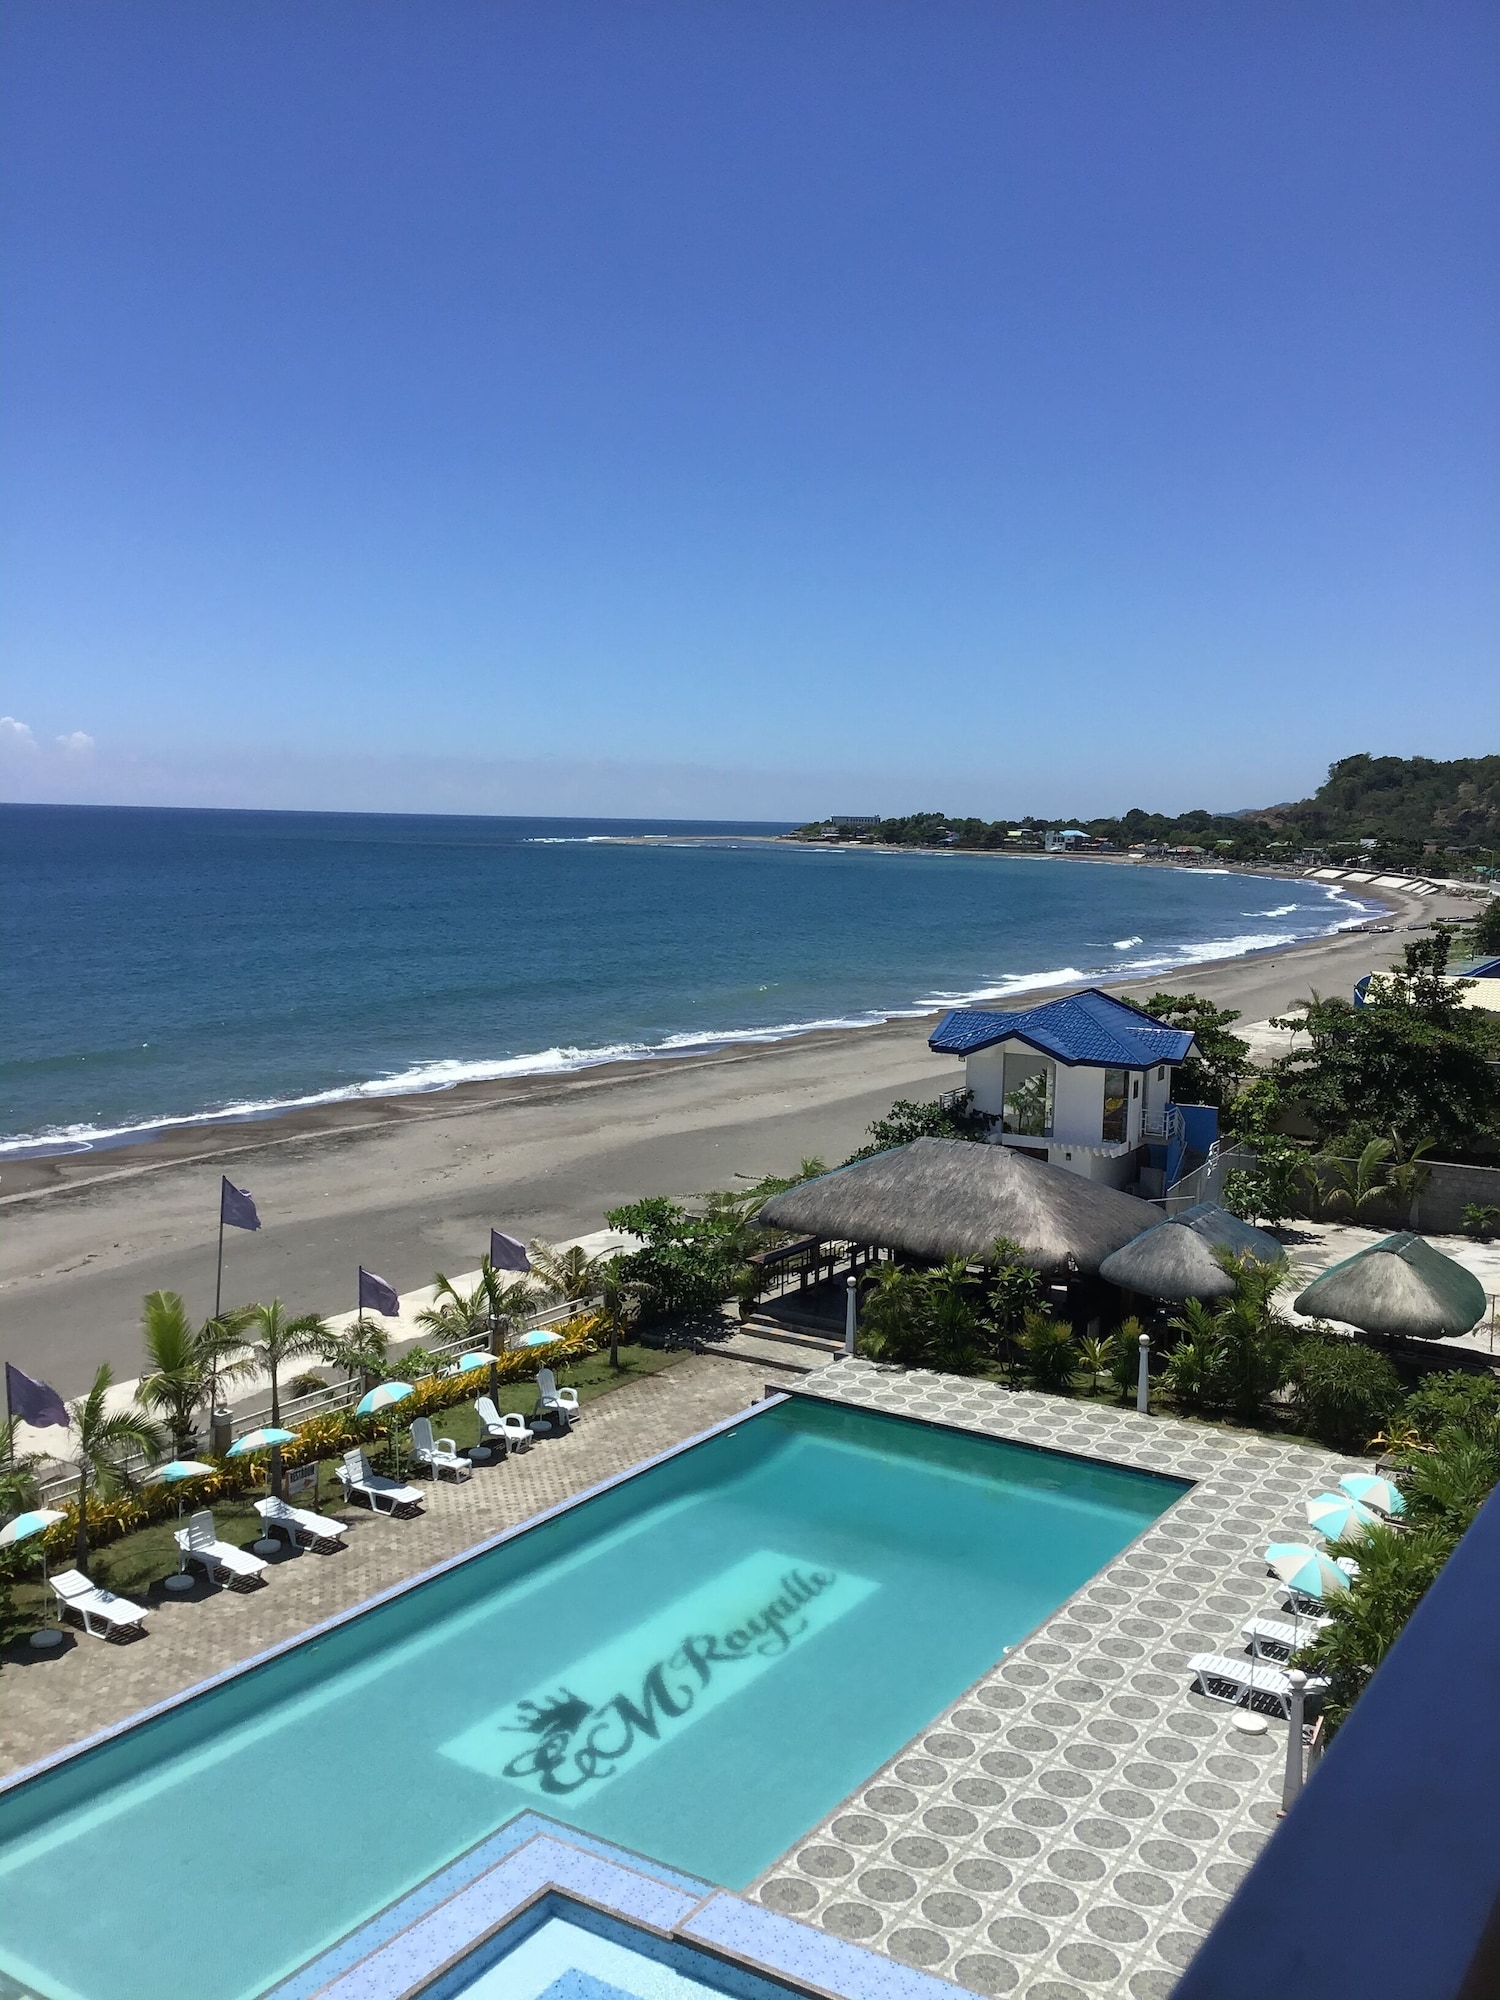 EM Royalle Hotel & Beach Resort, San Juan